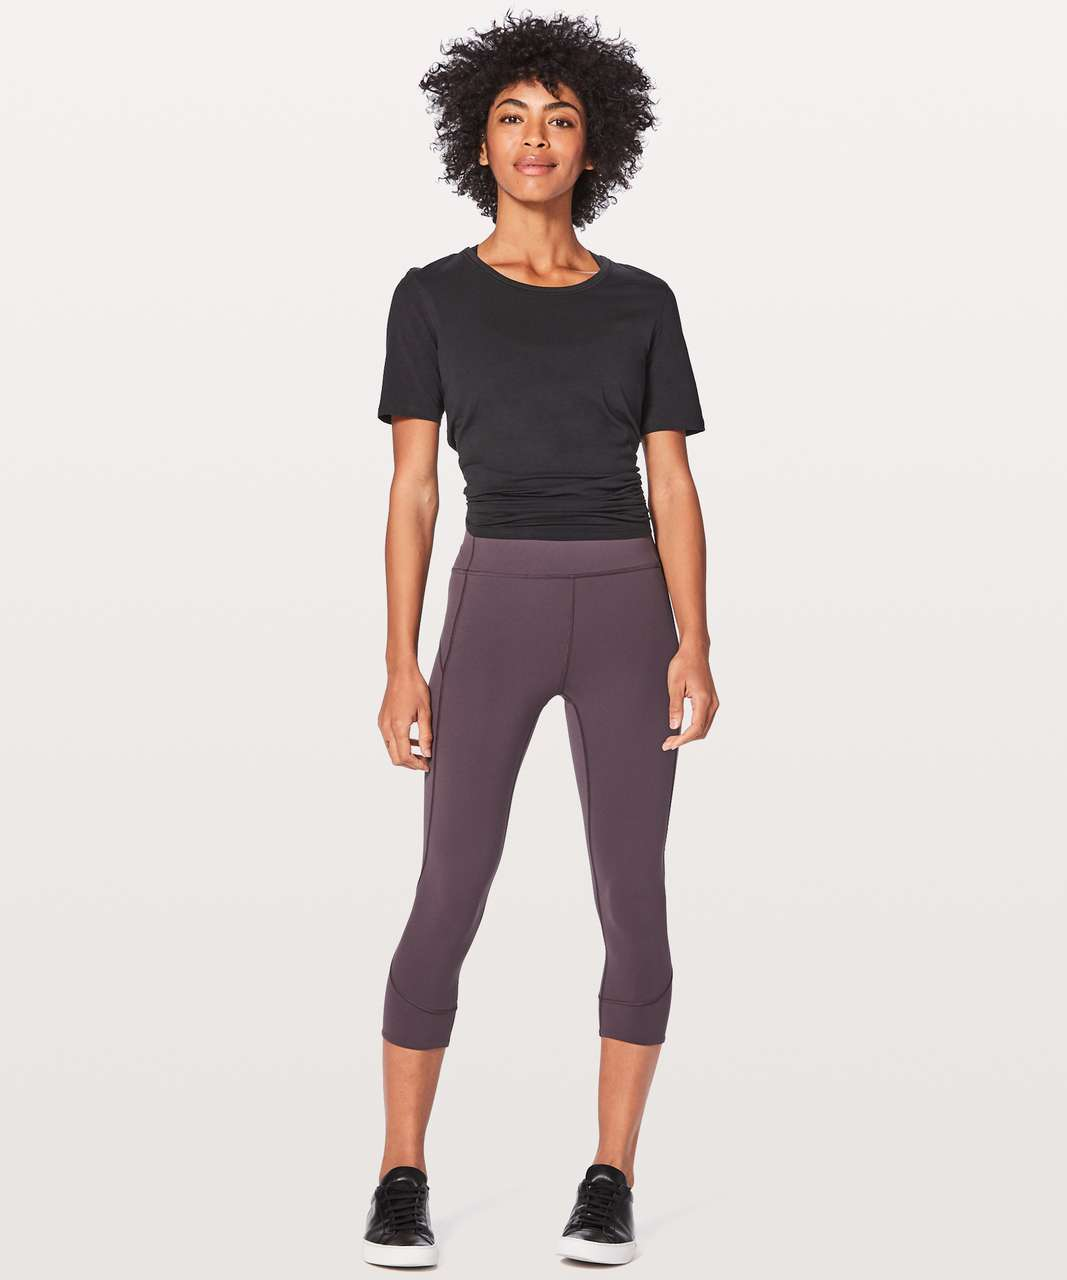 "Lululemon In Movement Crop *Everlux 19"" - Black Currant"